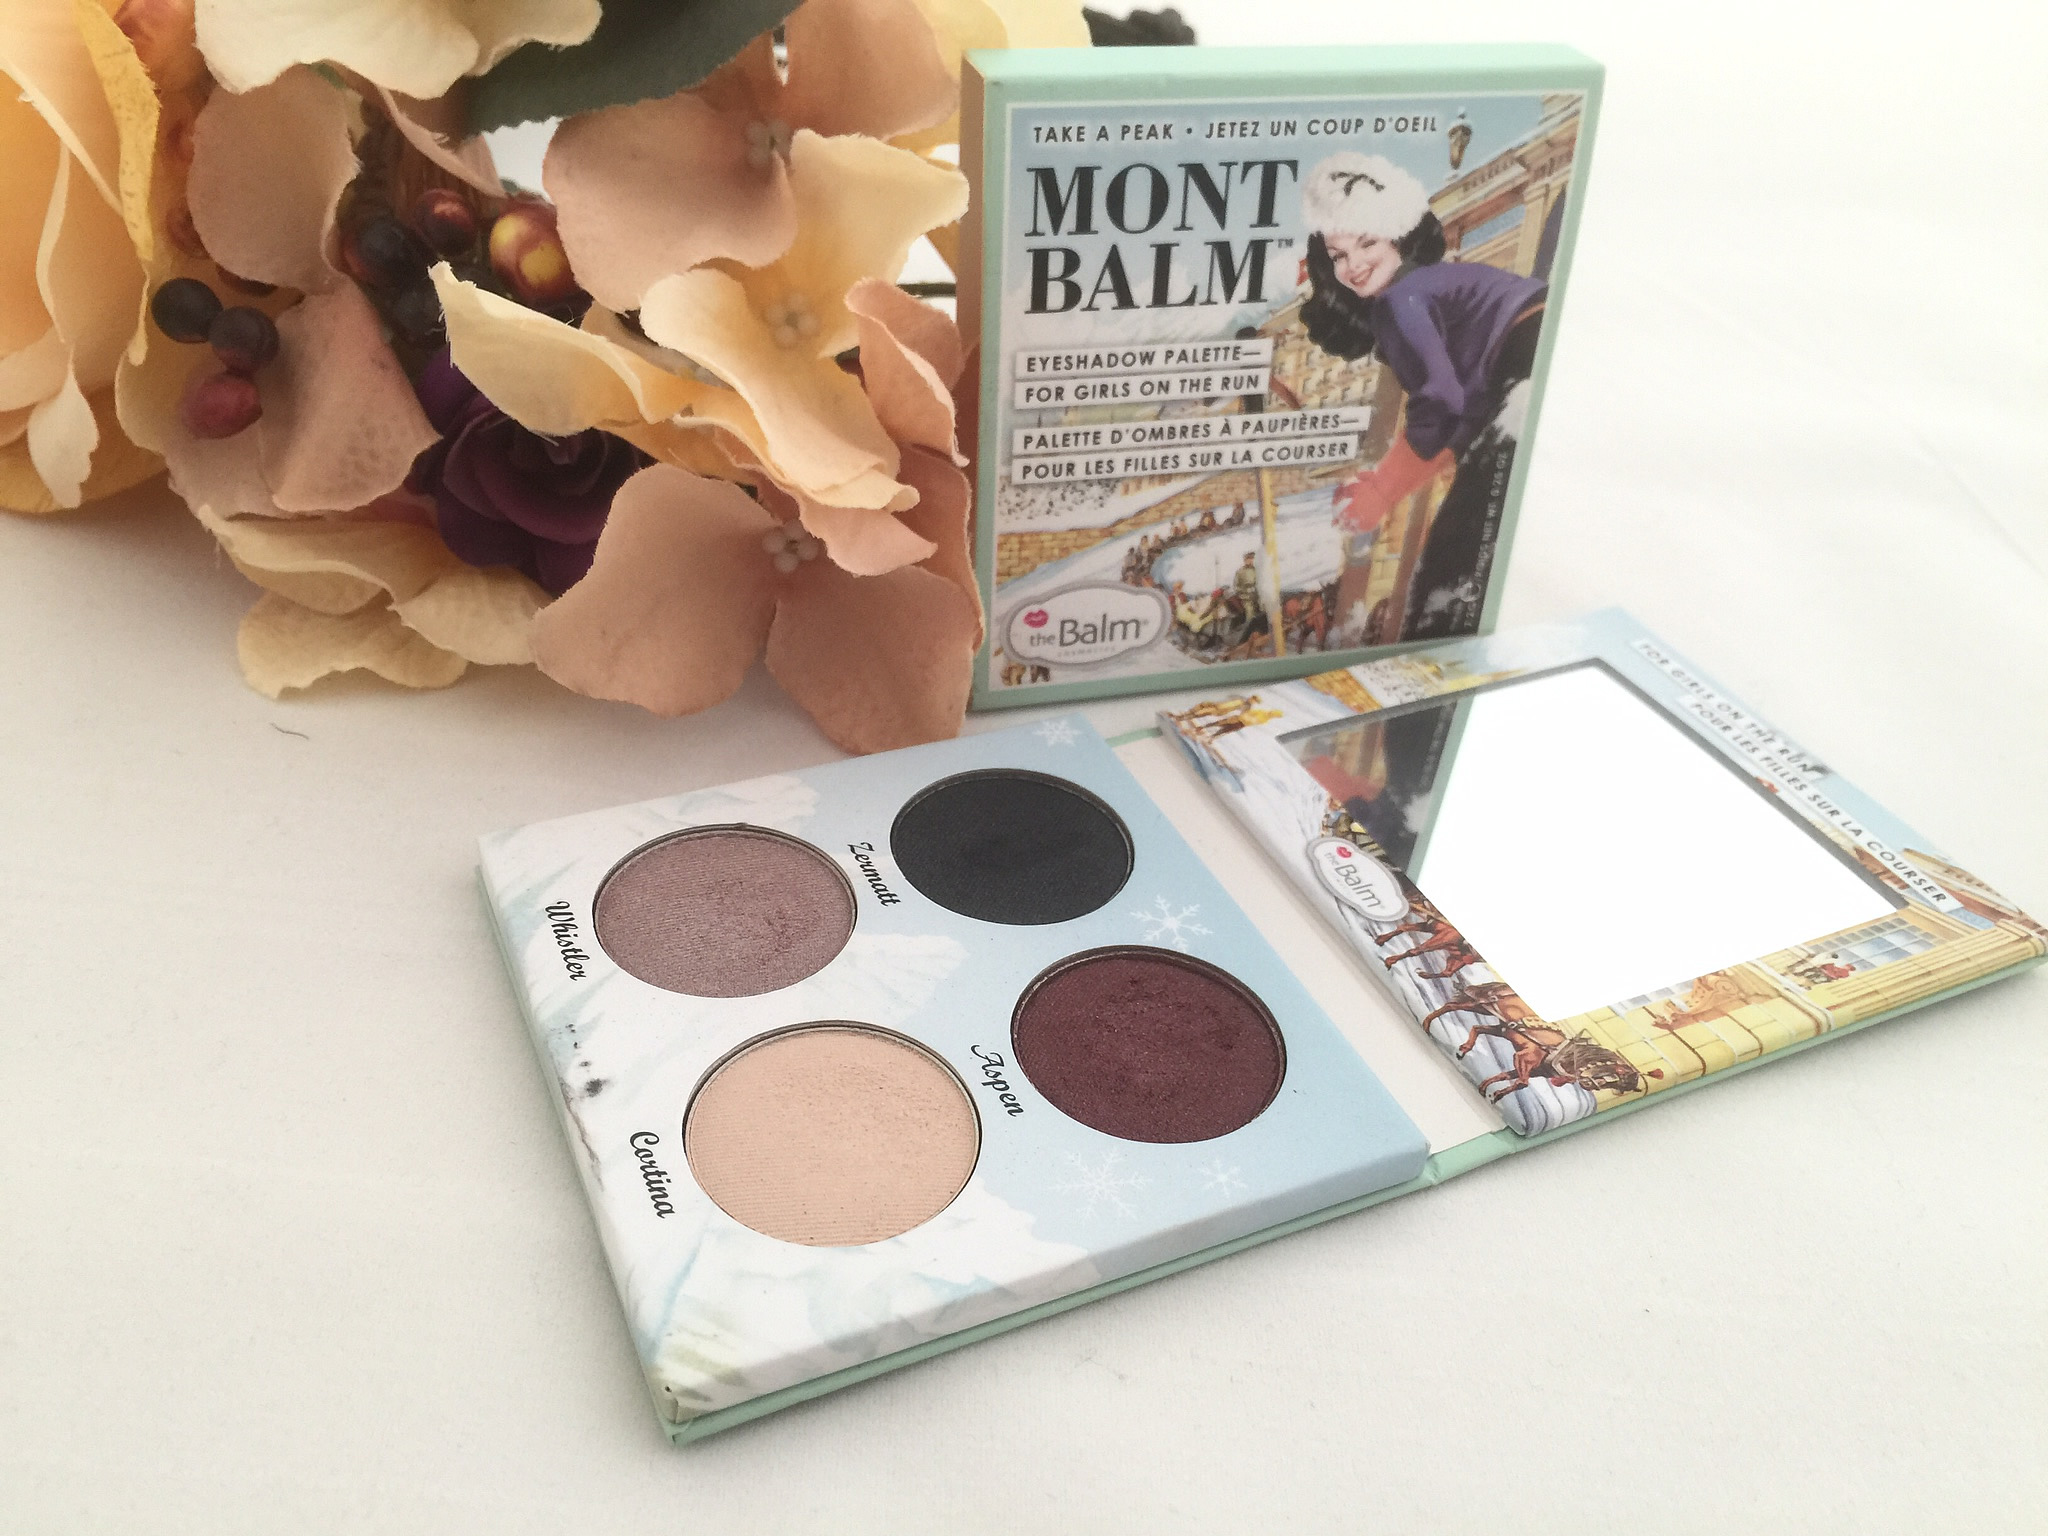 The Balm – Mont Balm Far Paleti